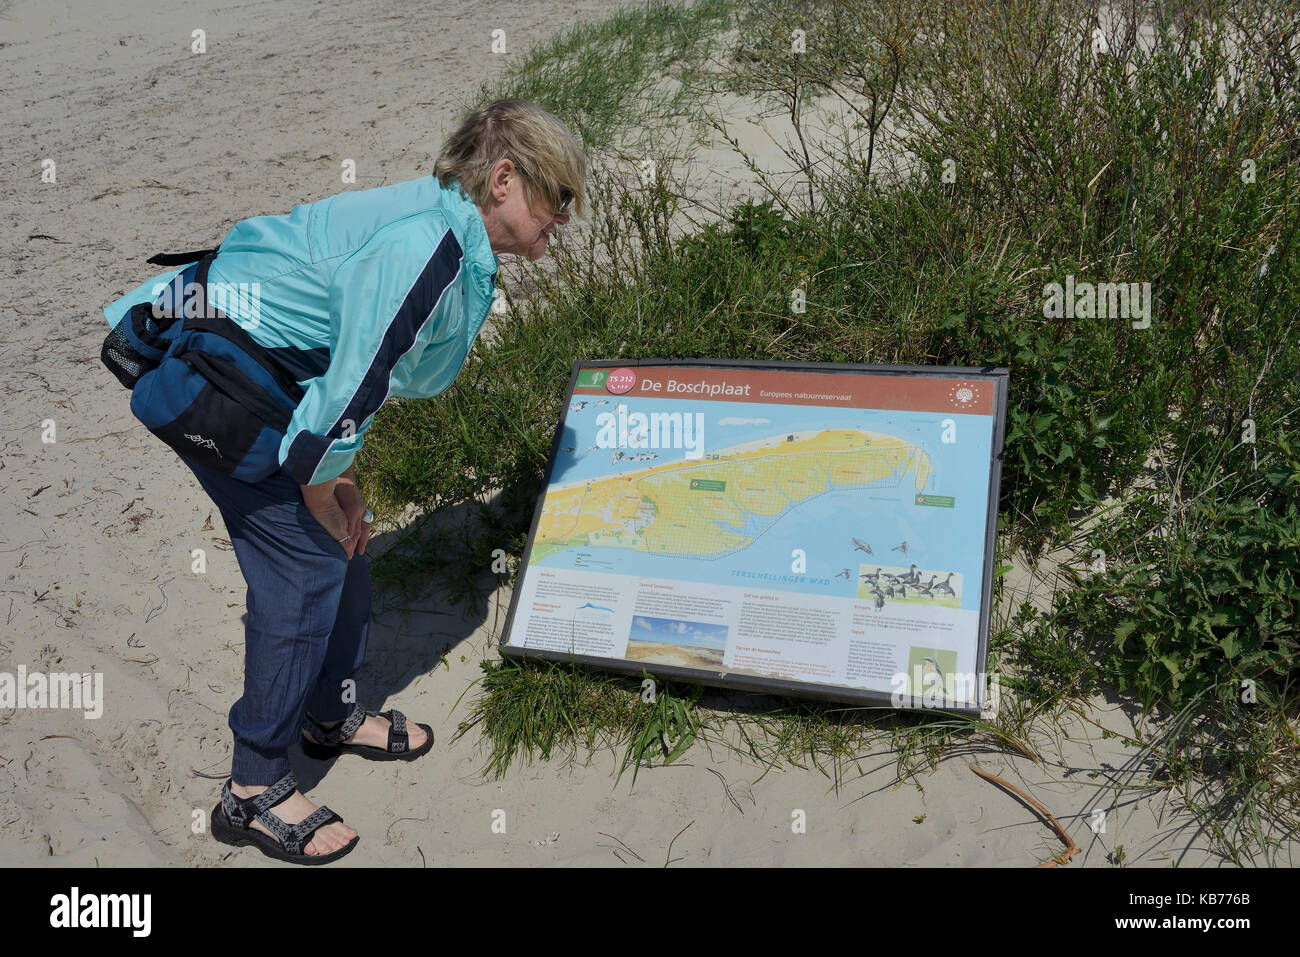 Woman next to Information panel from Staatsbosbeheer indicating the access to the Boschplaat, The Netherlands, Friesland, - Stock Image